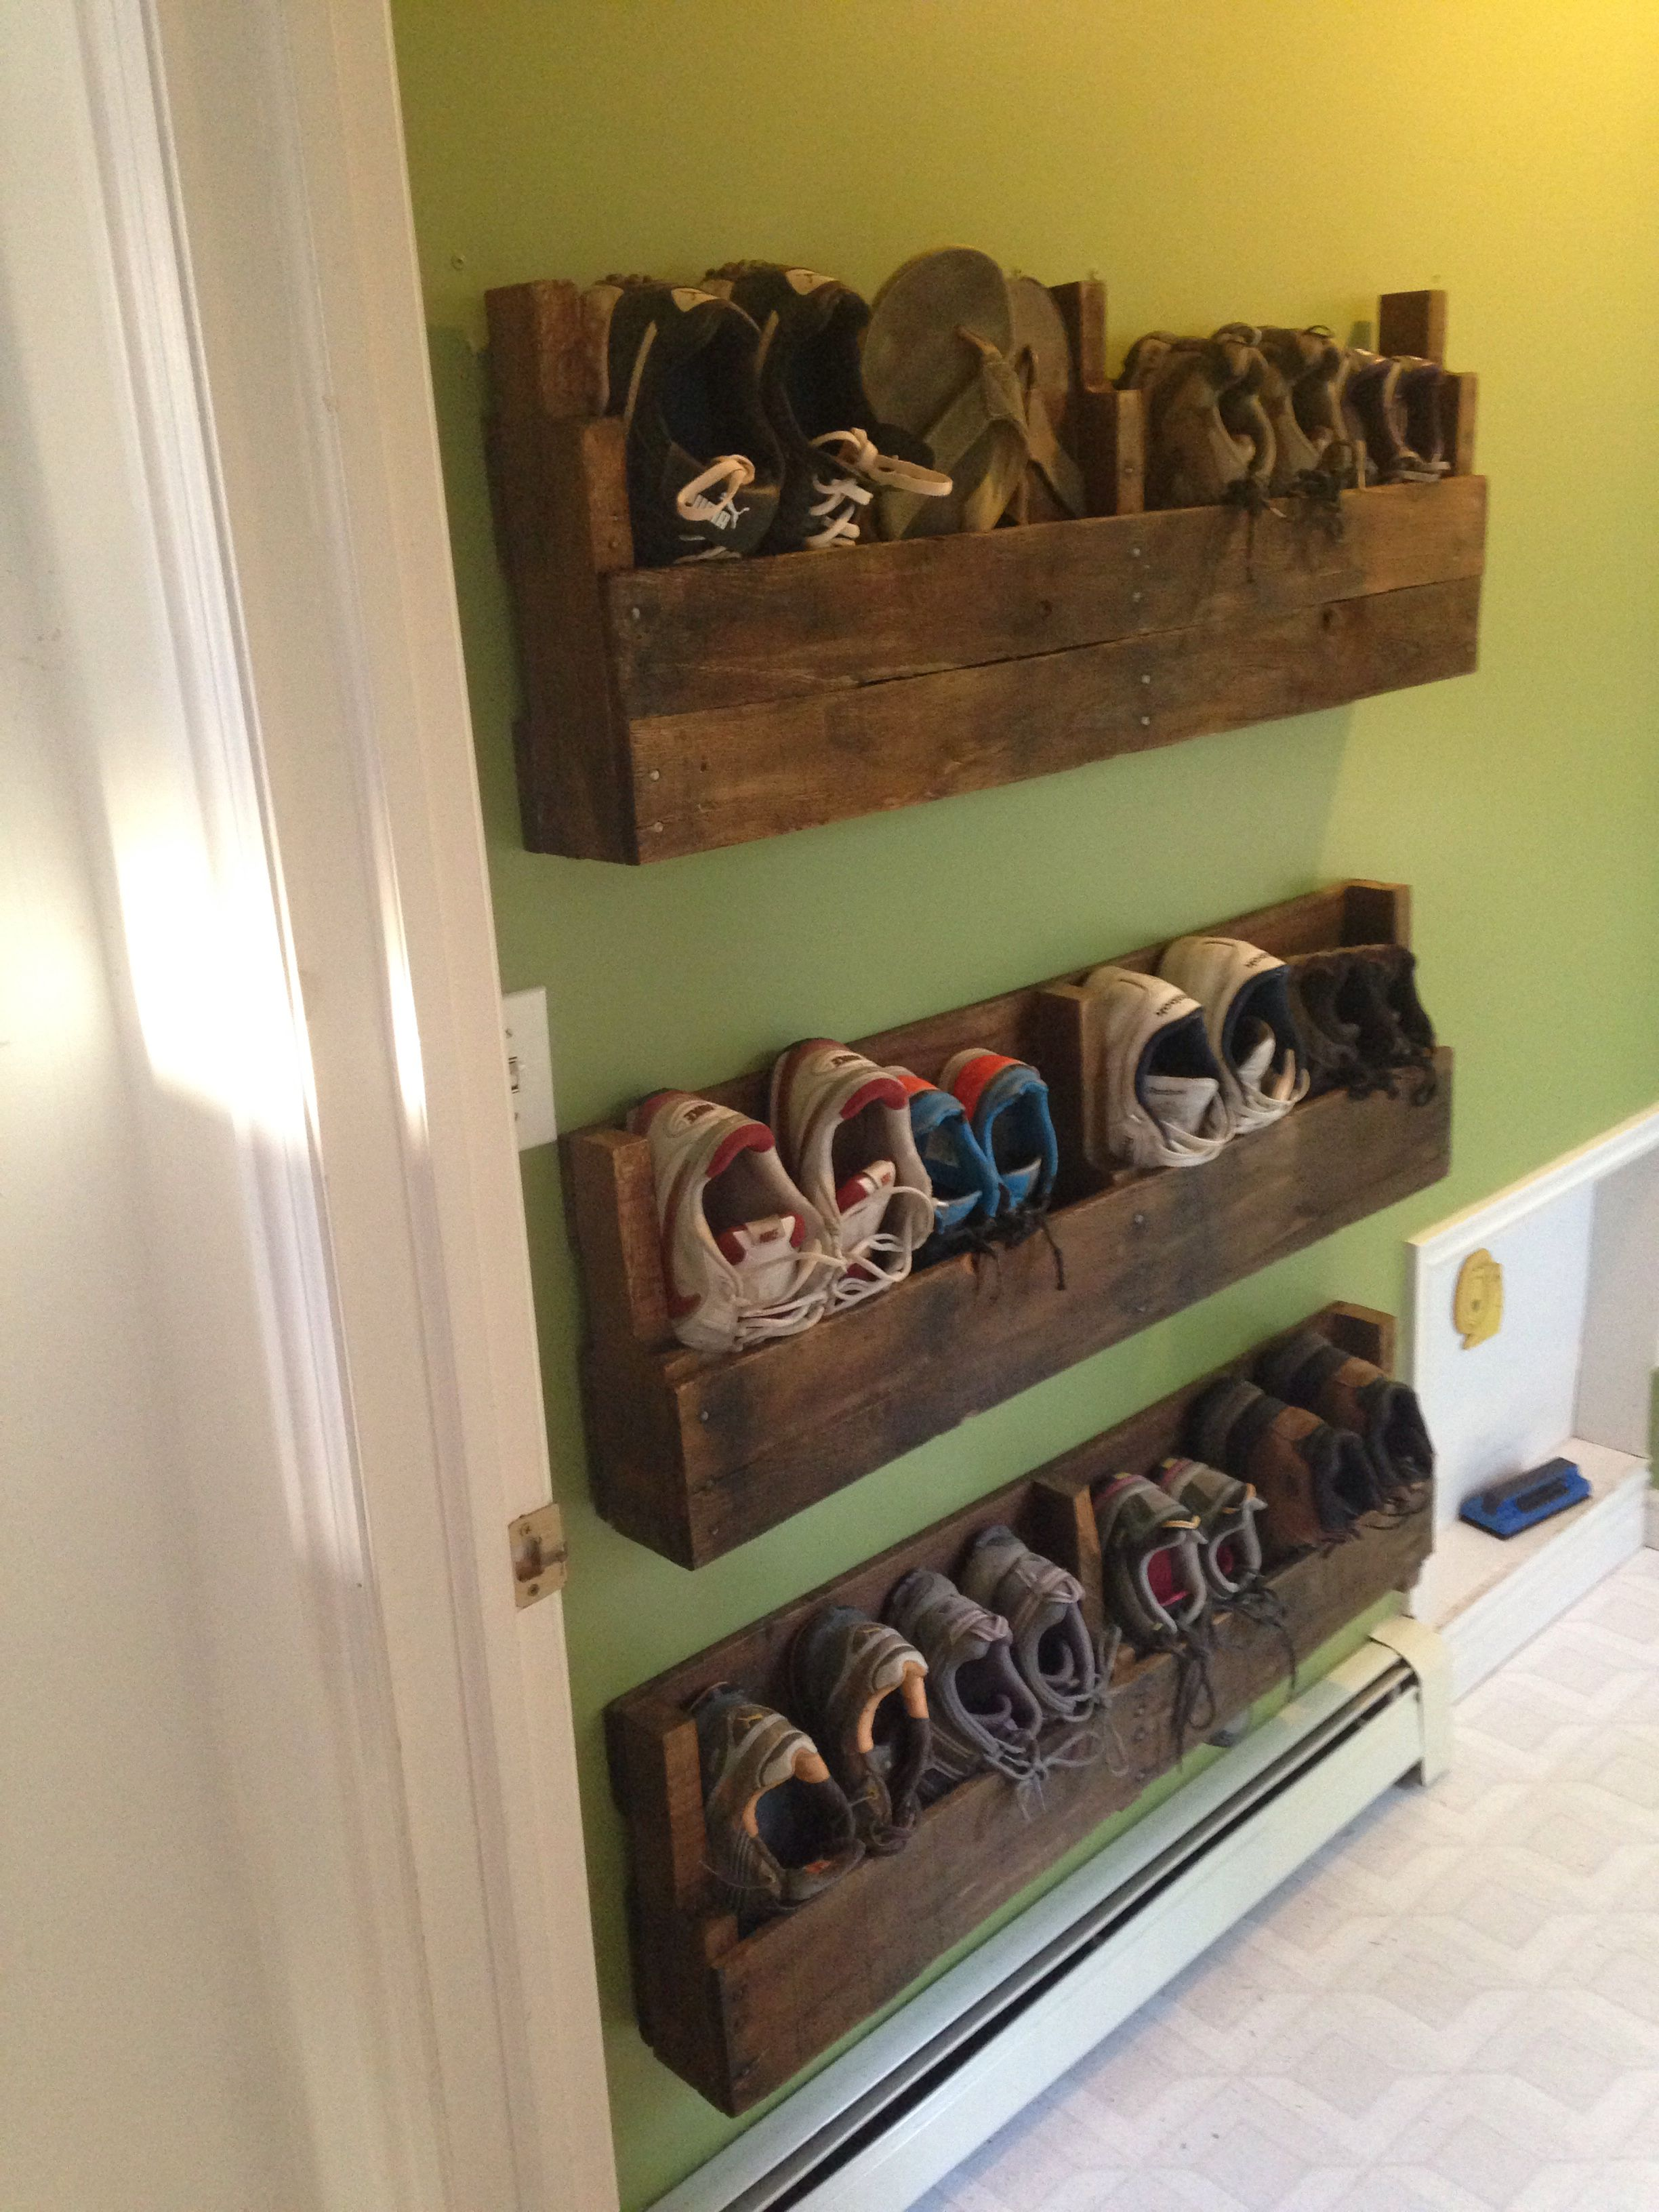 Dyi shoe rack made out of pallets! Project I have been